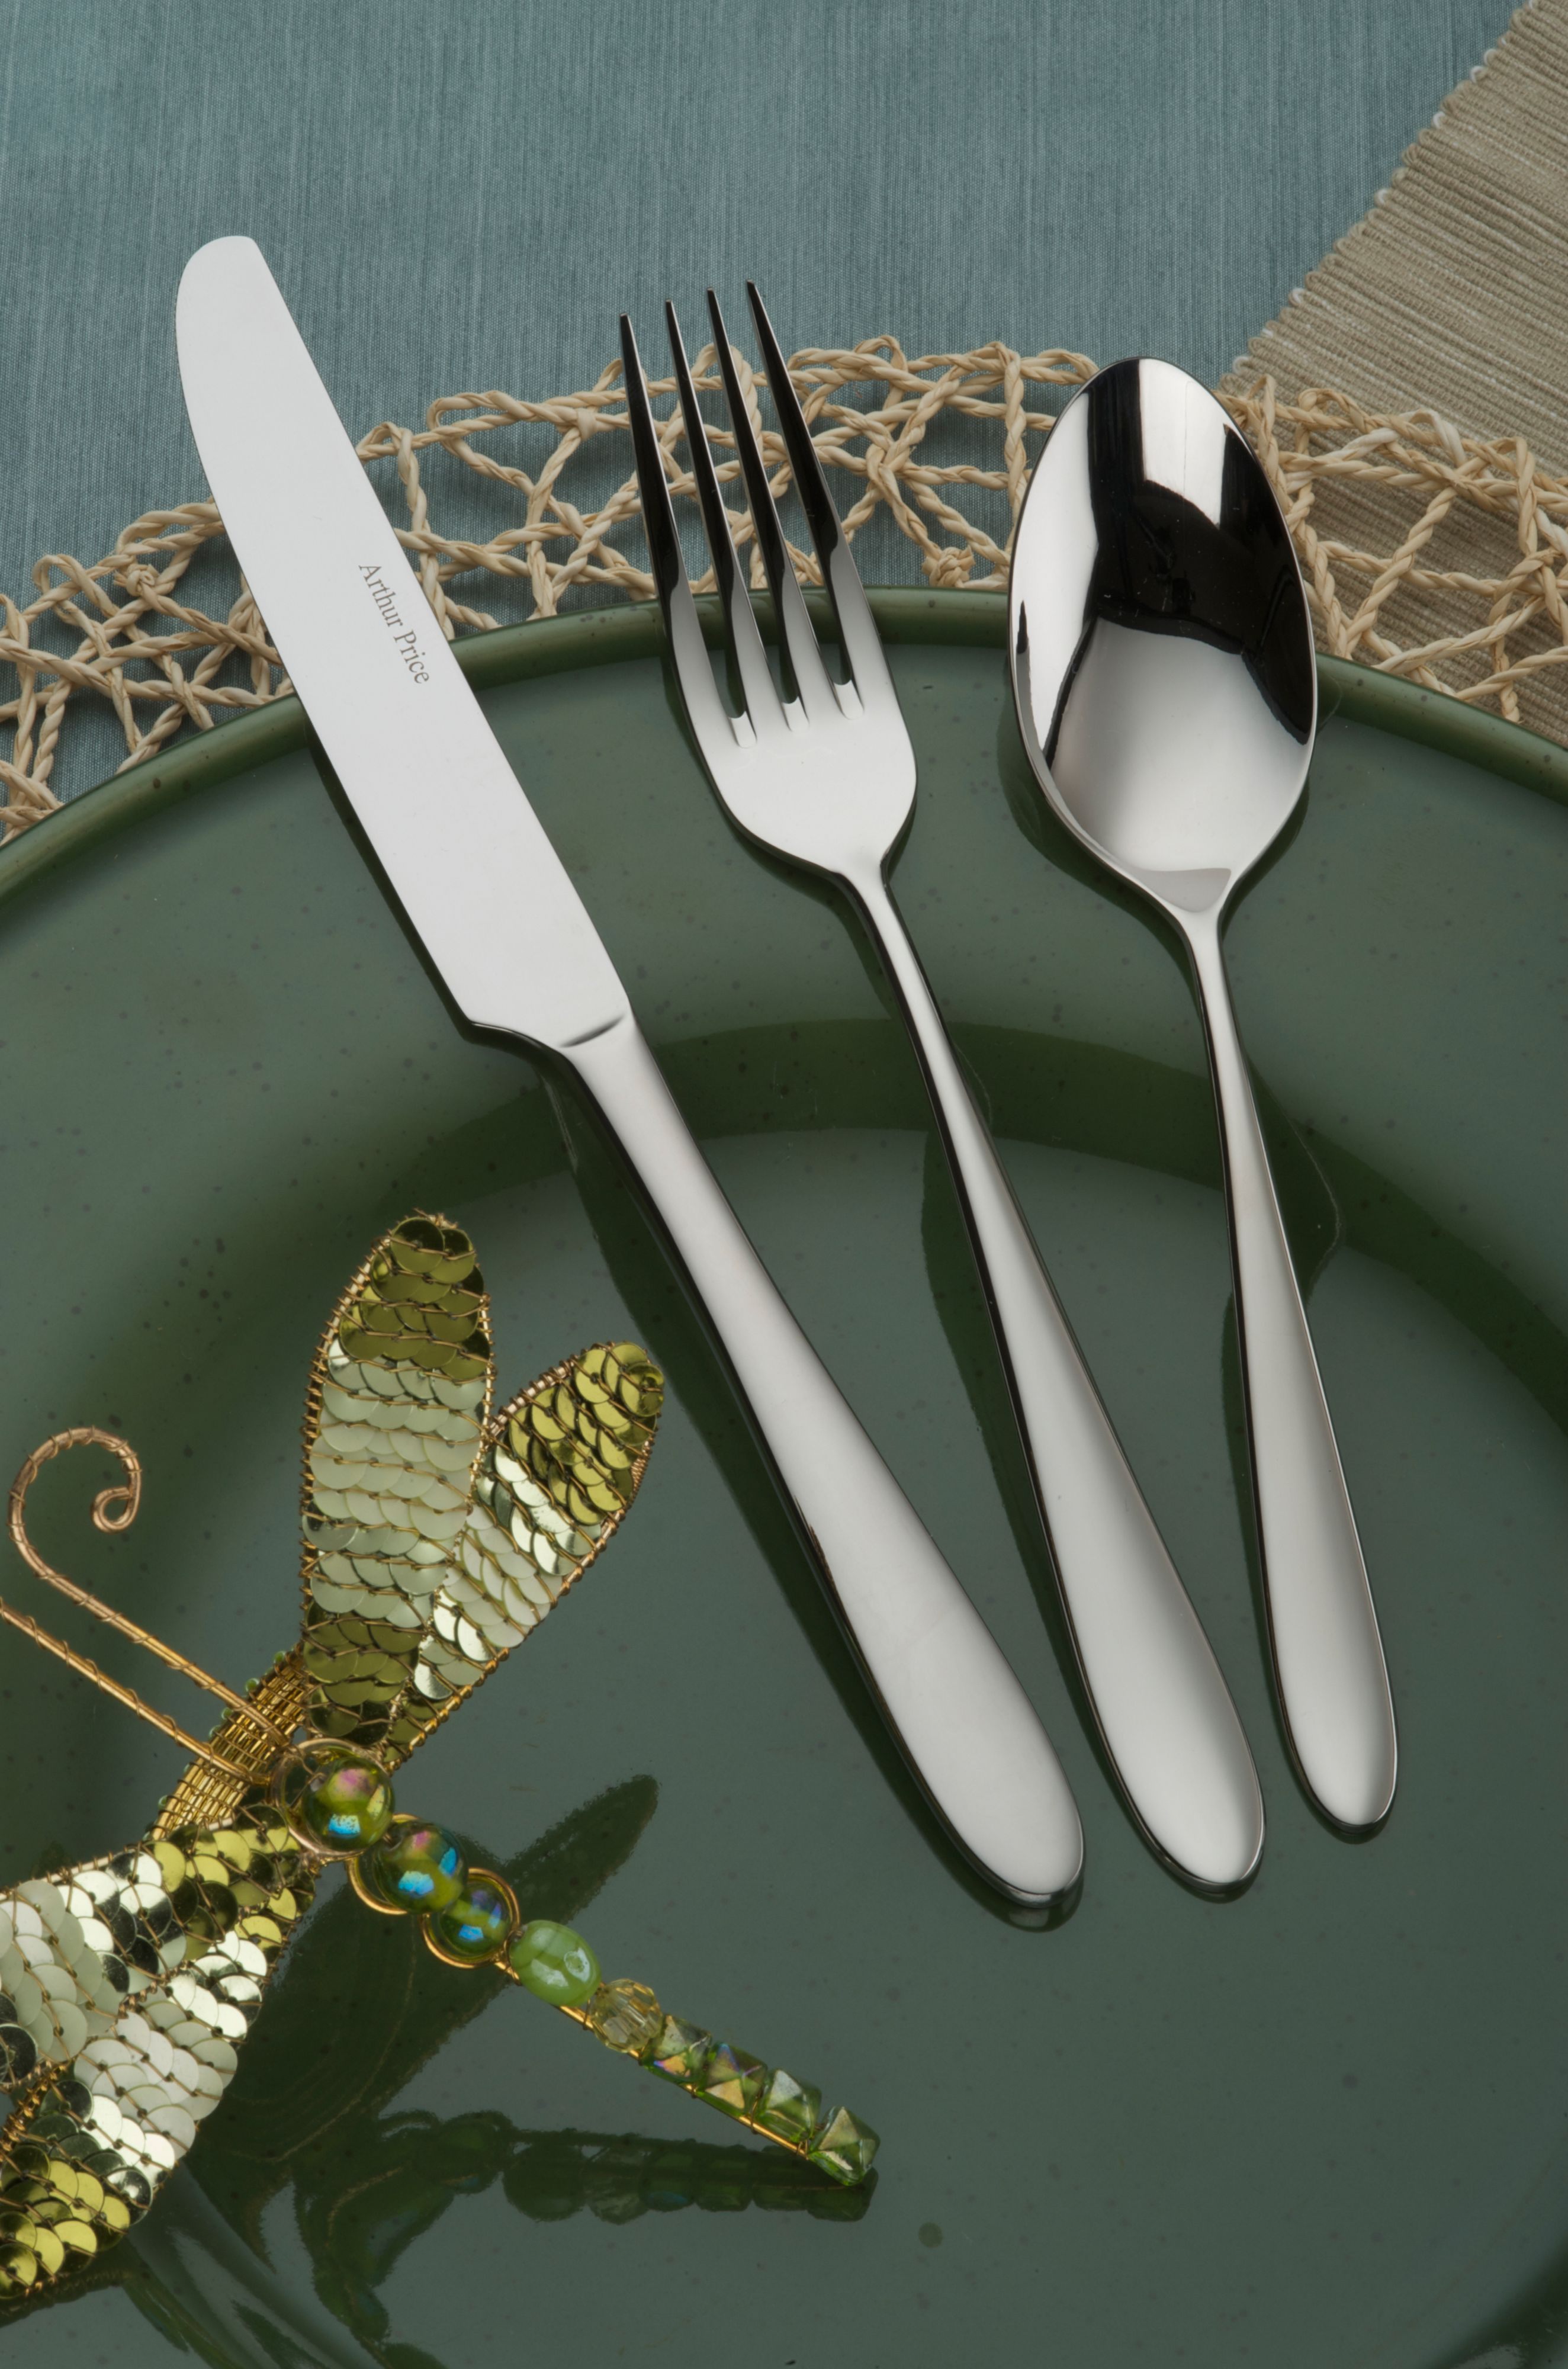 Willow stainless steel 7 pce place setting